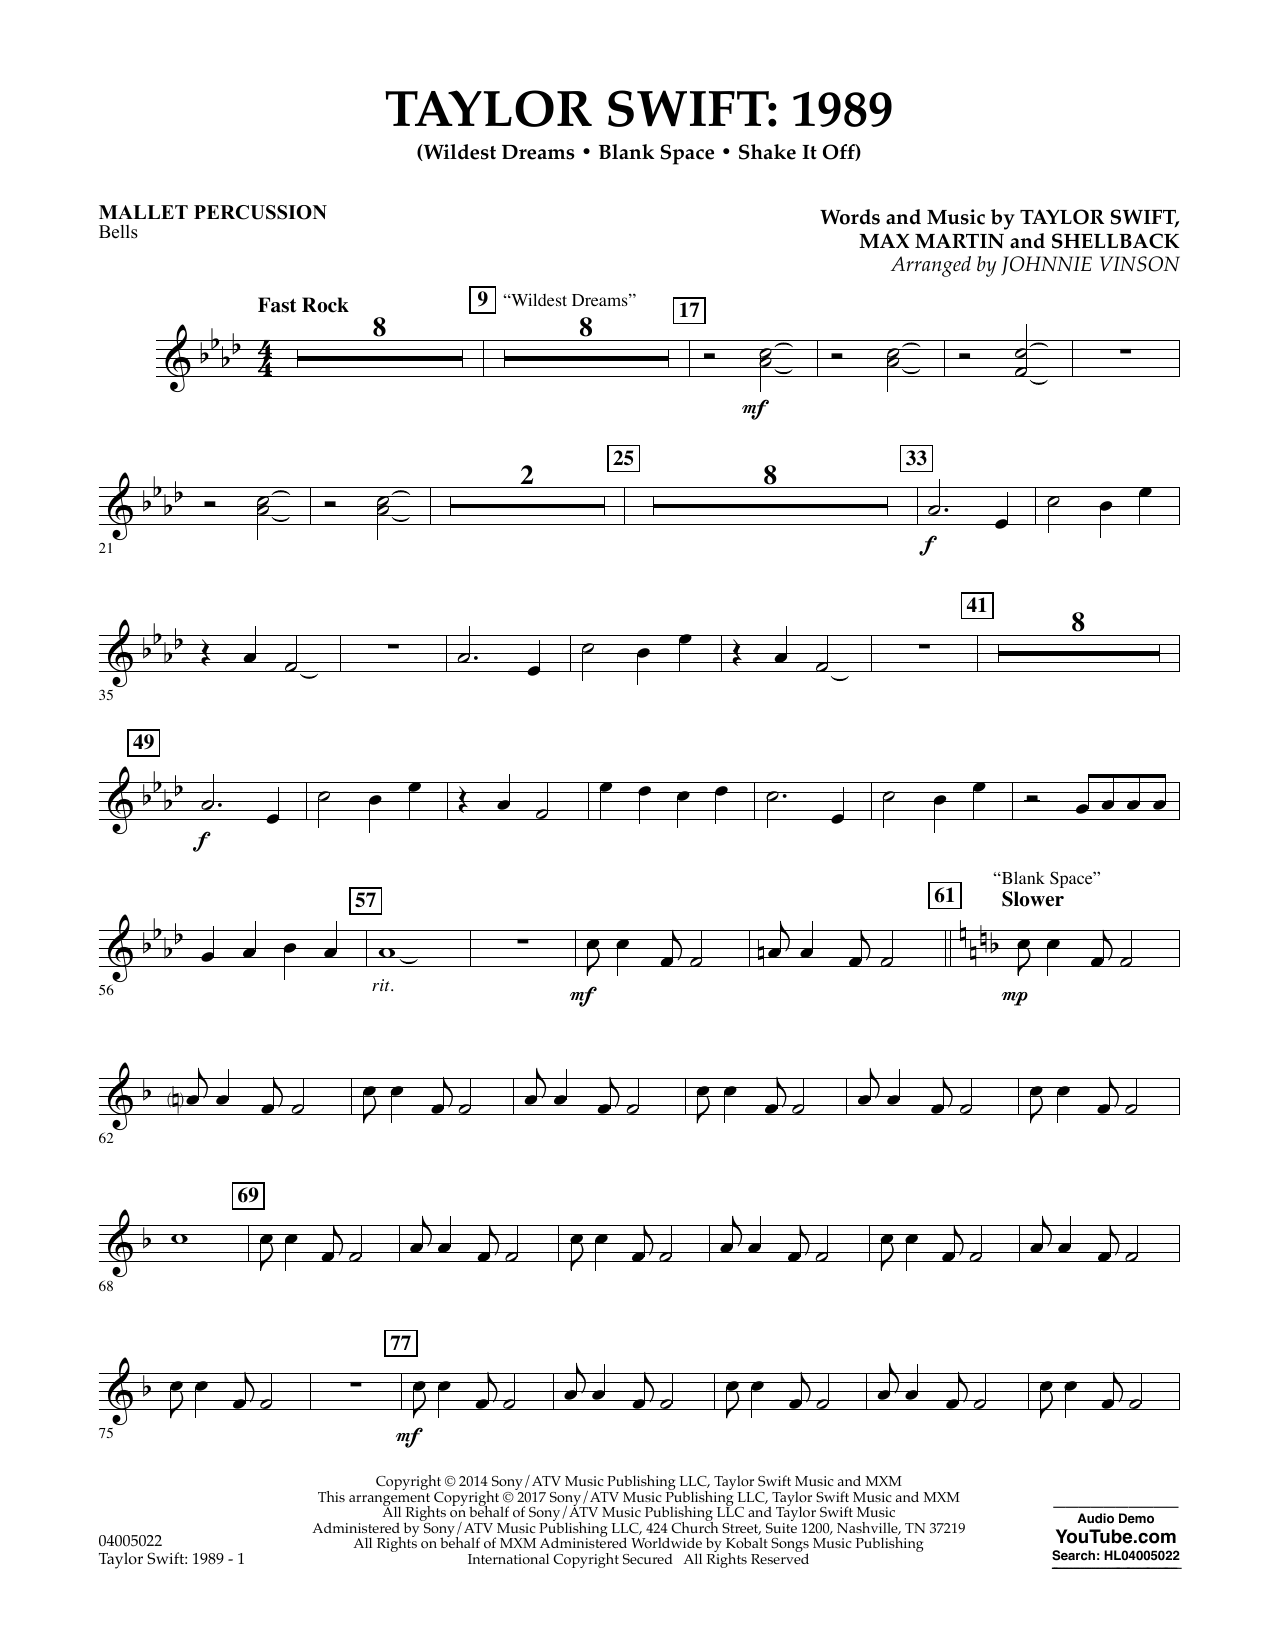 Taylor Swift - Taylor Swift: 1989 - Mallet Percussion